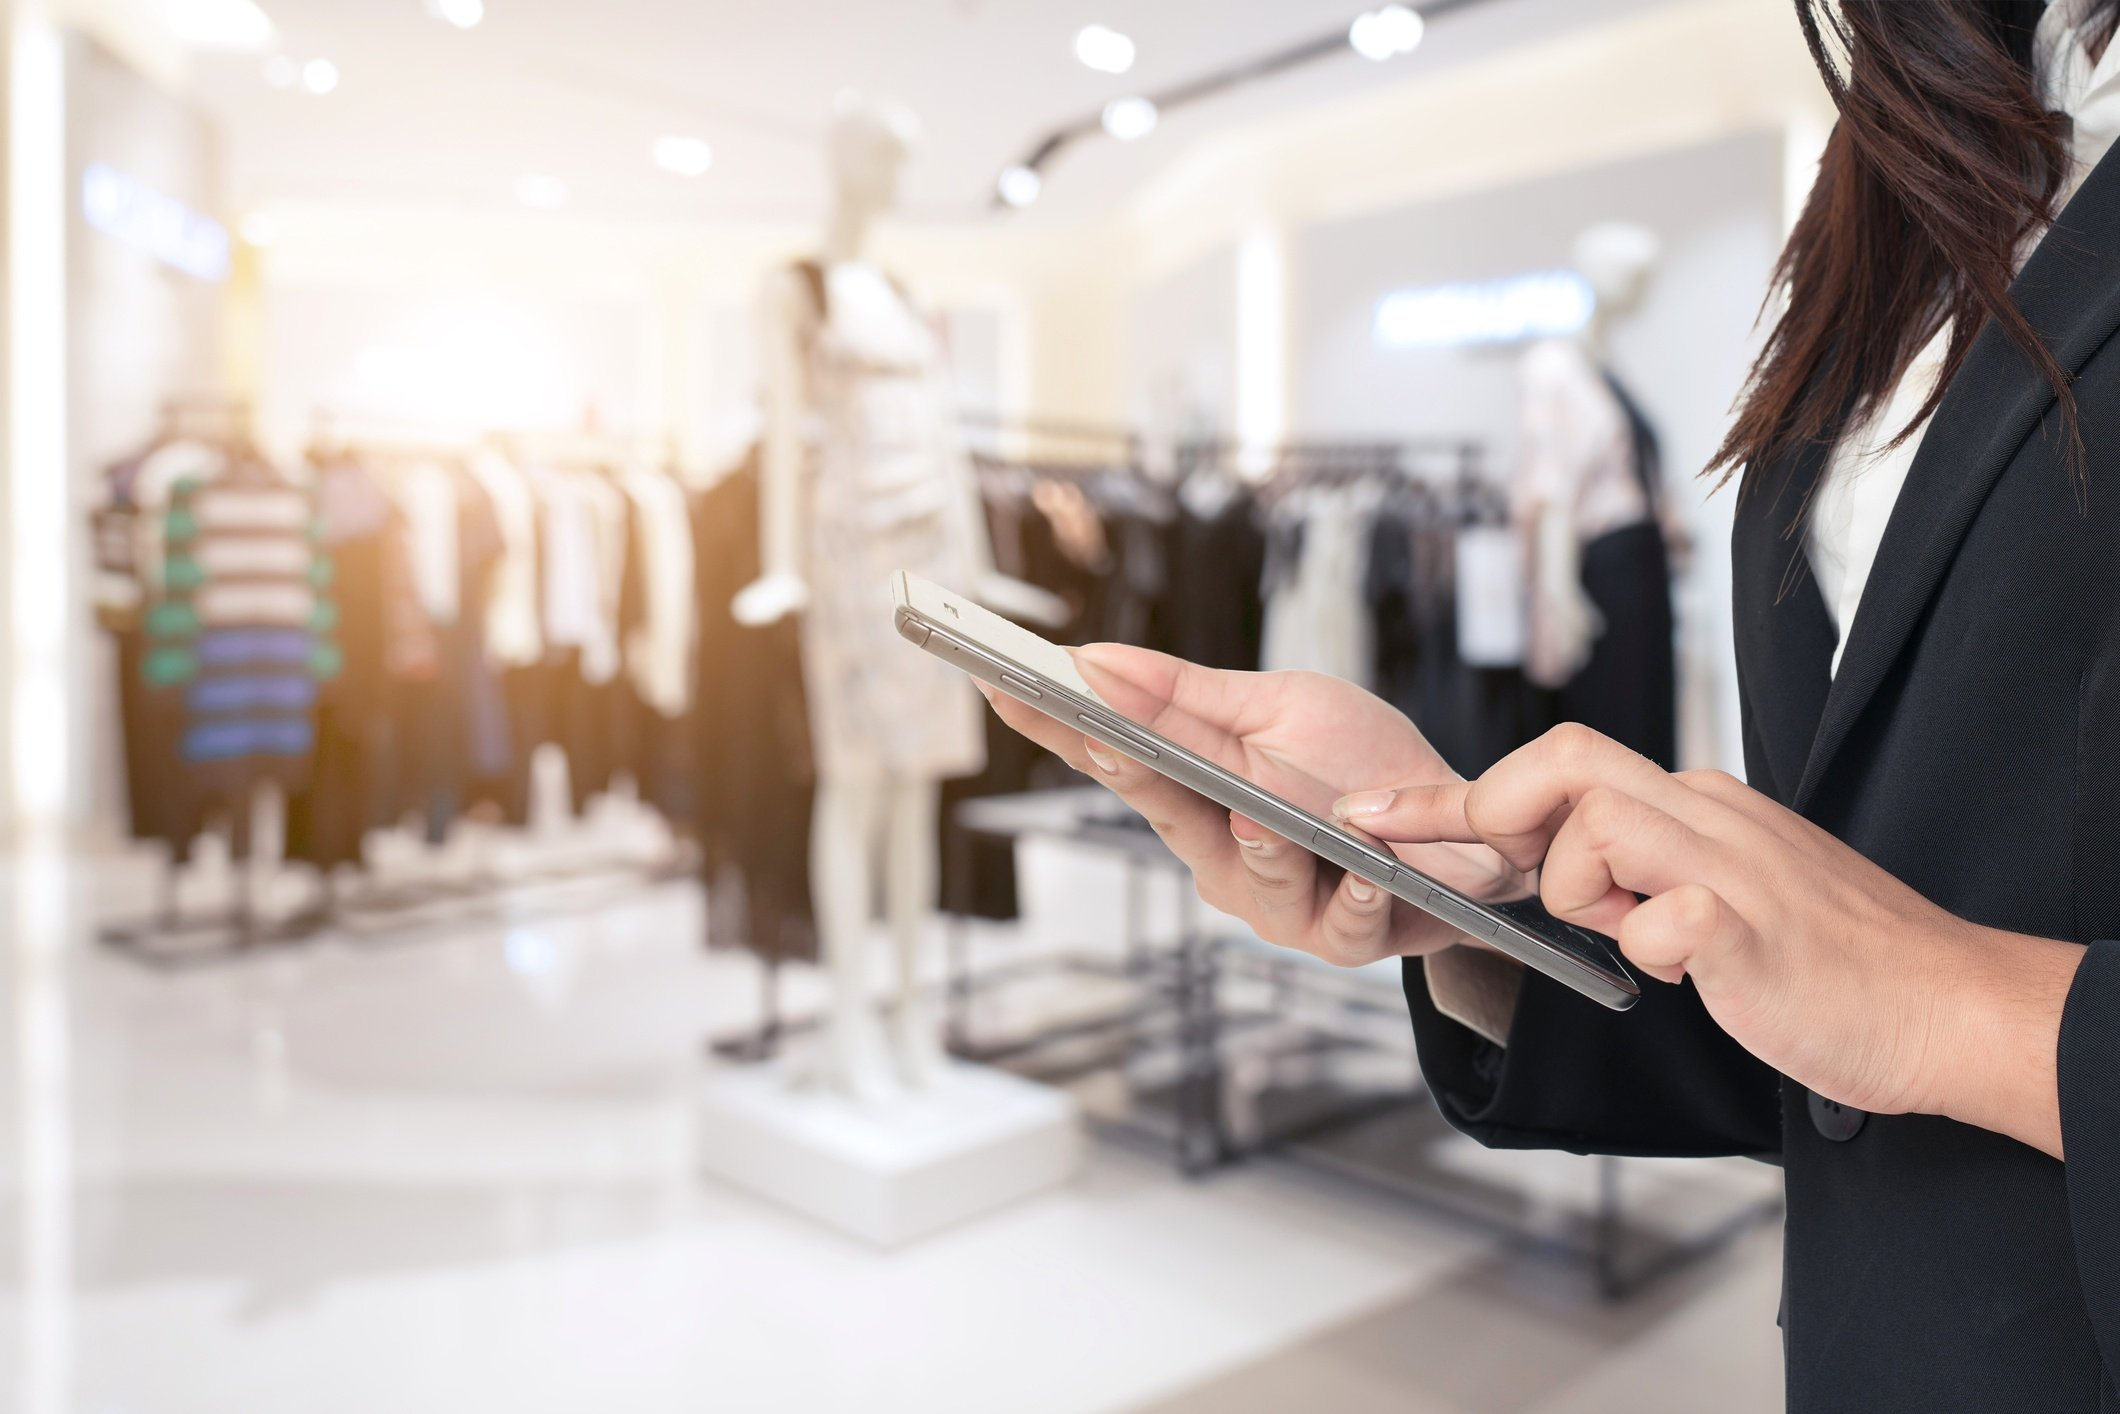 Retailers can use real-time data and mobile apps to track goods, assets, demand and inventory to solve out-of-stock issues.